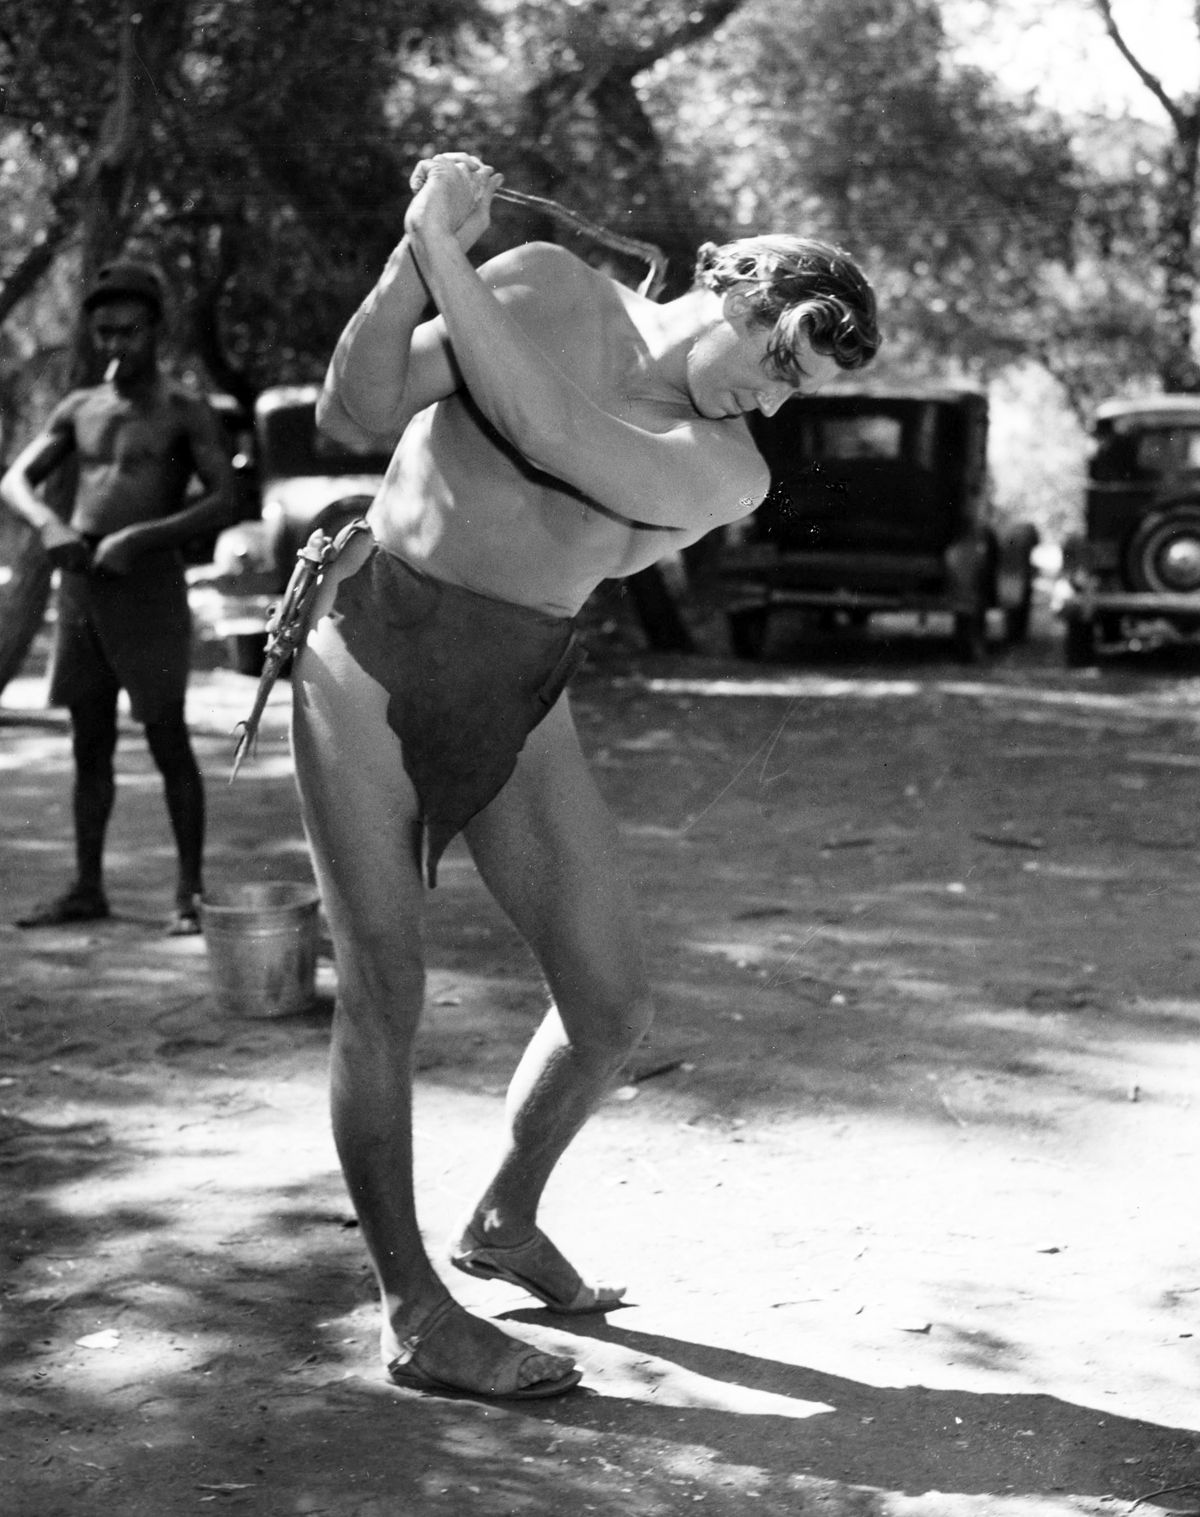 Johnny Weissmuller practices his golf swing between takes while on location.